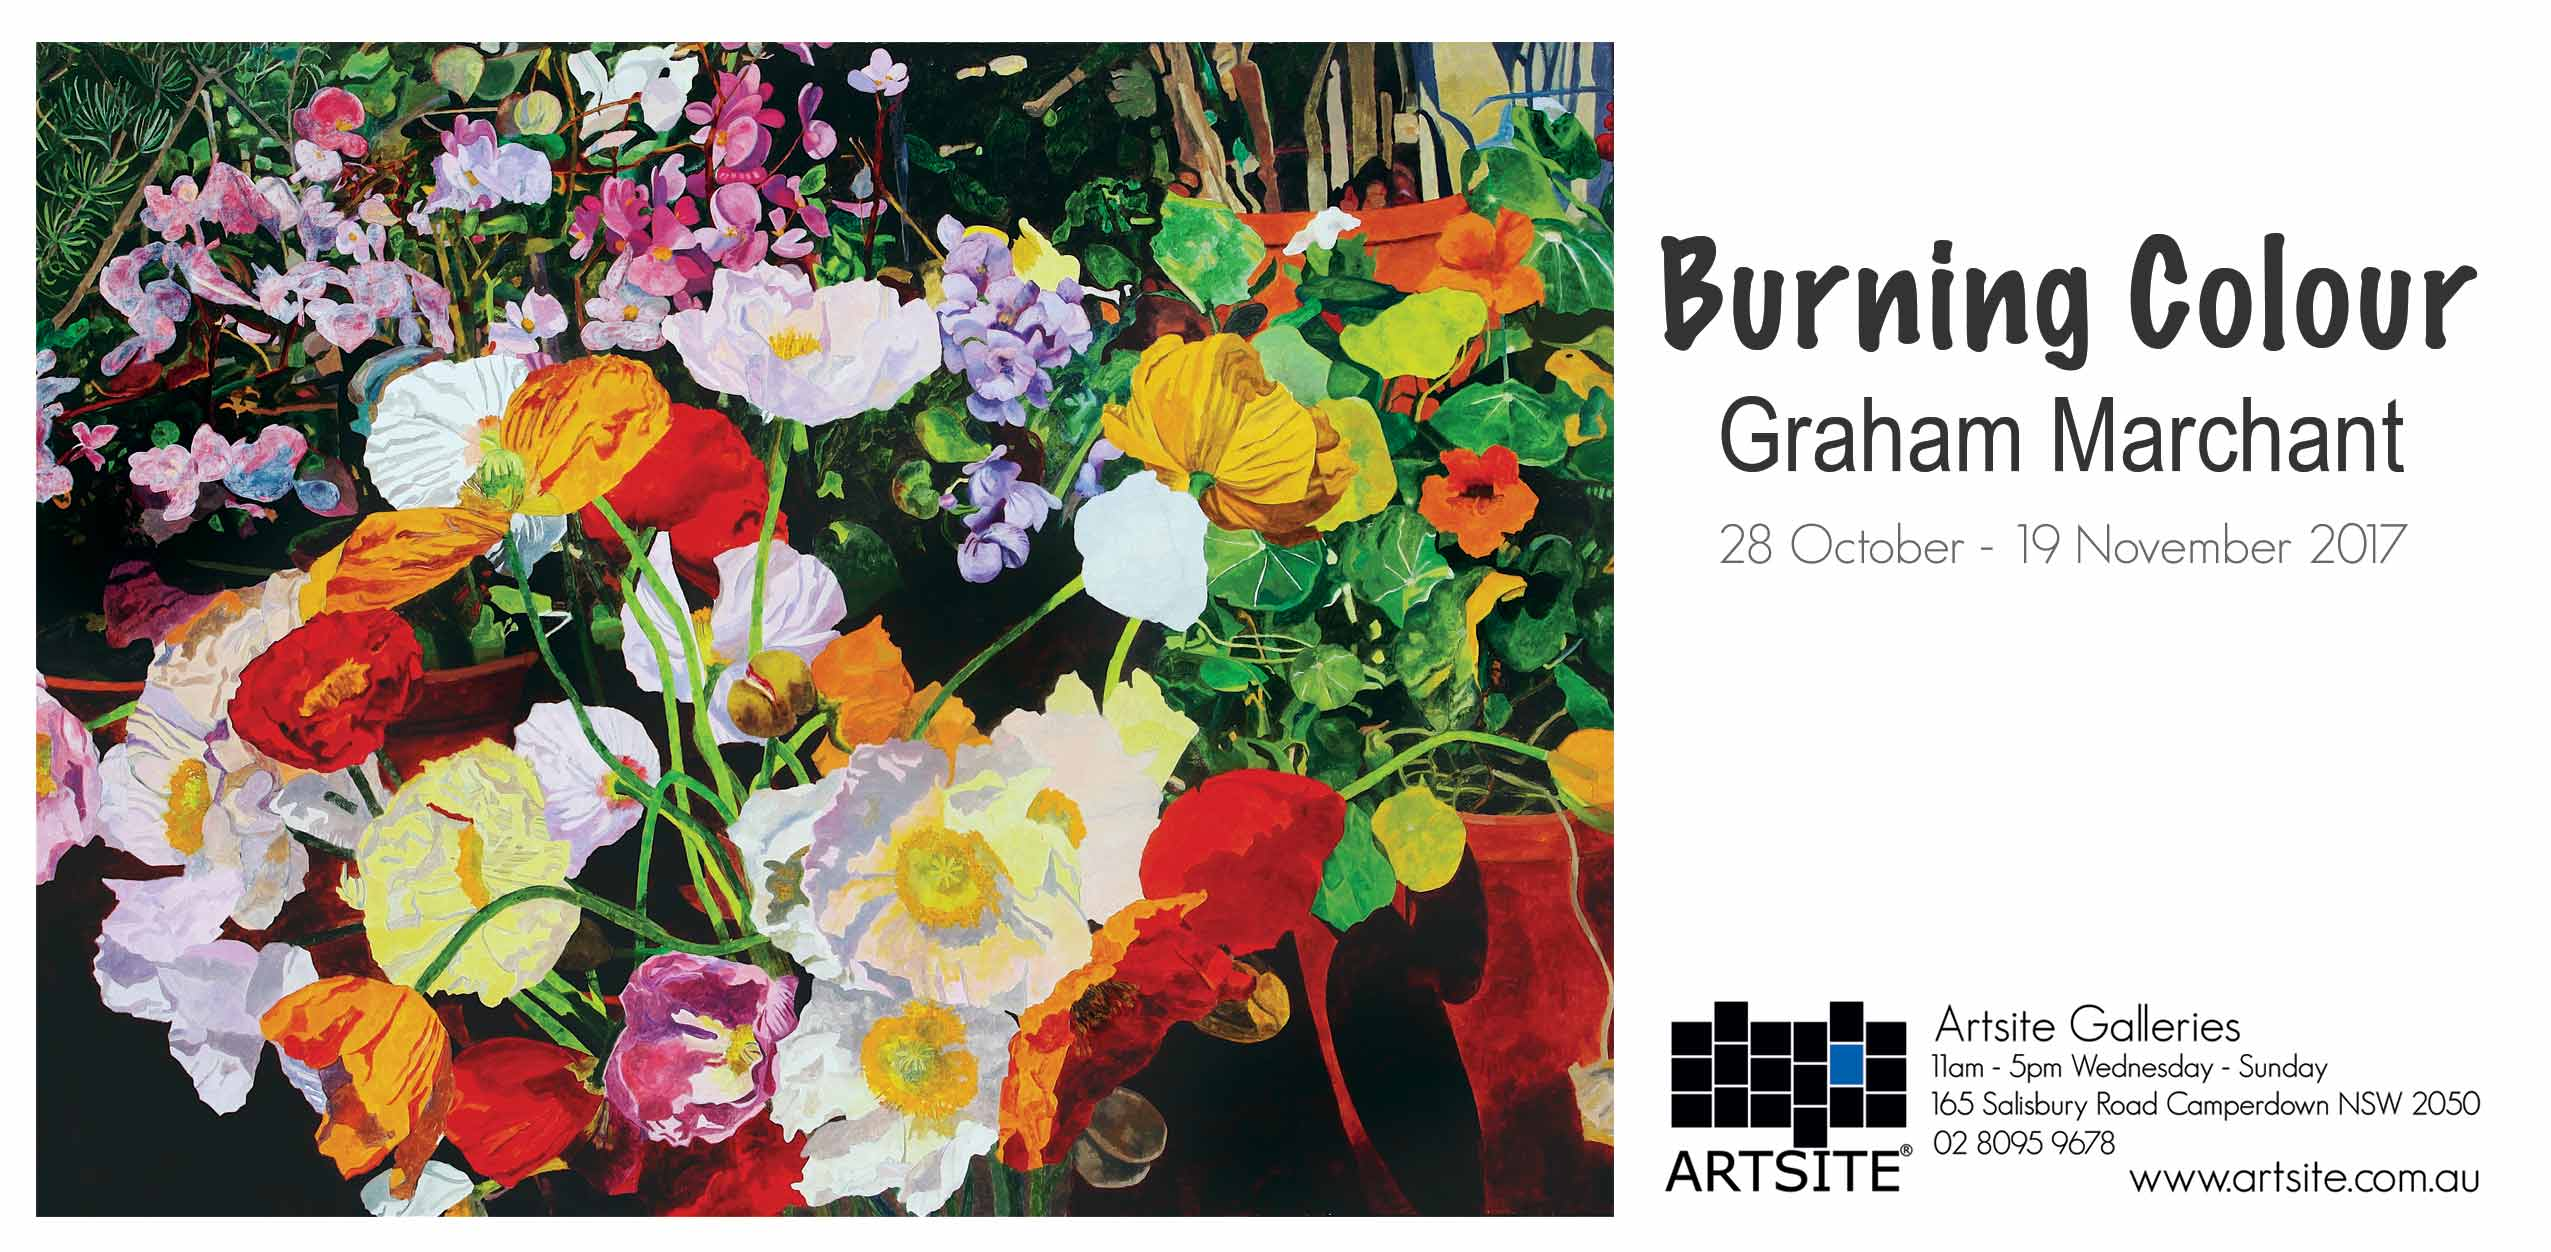 Burning Colour: Graham Marchant, Artsite Gallery, 28 October-November 2017.